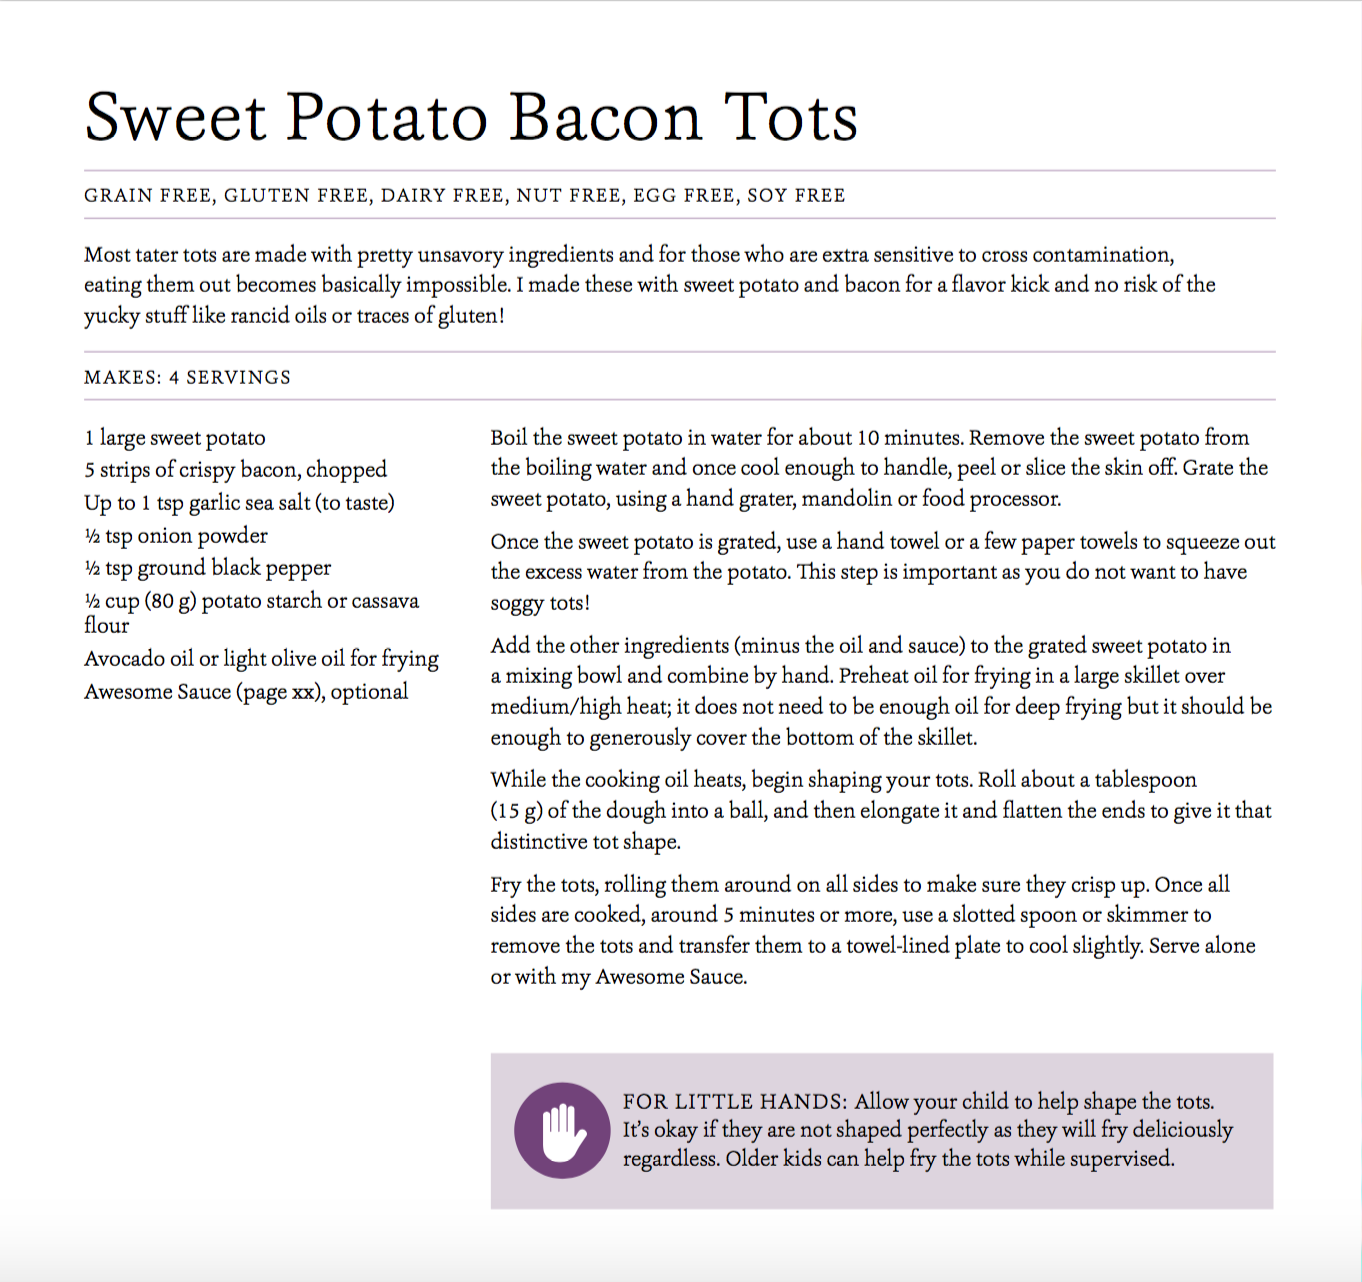 Sweet Potato Bacon Tots